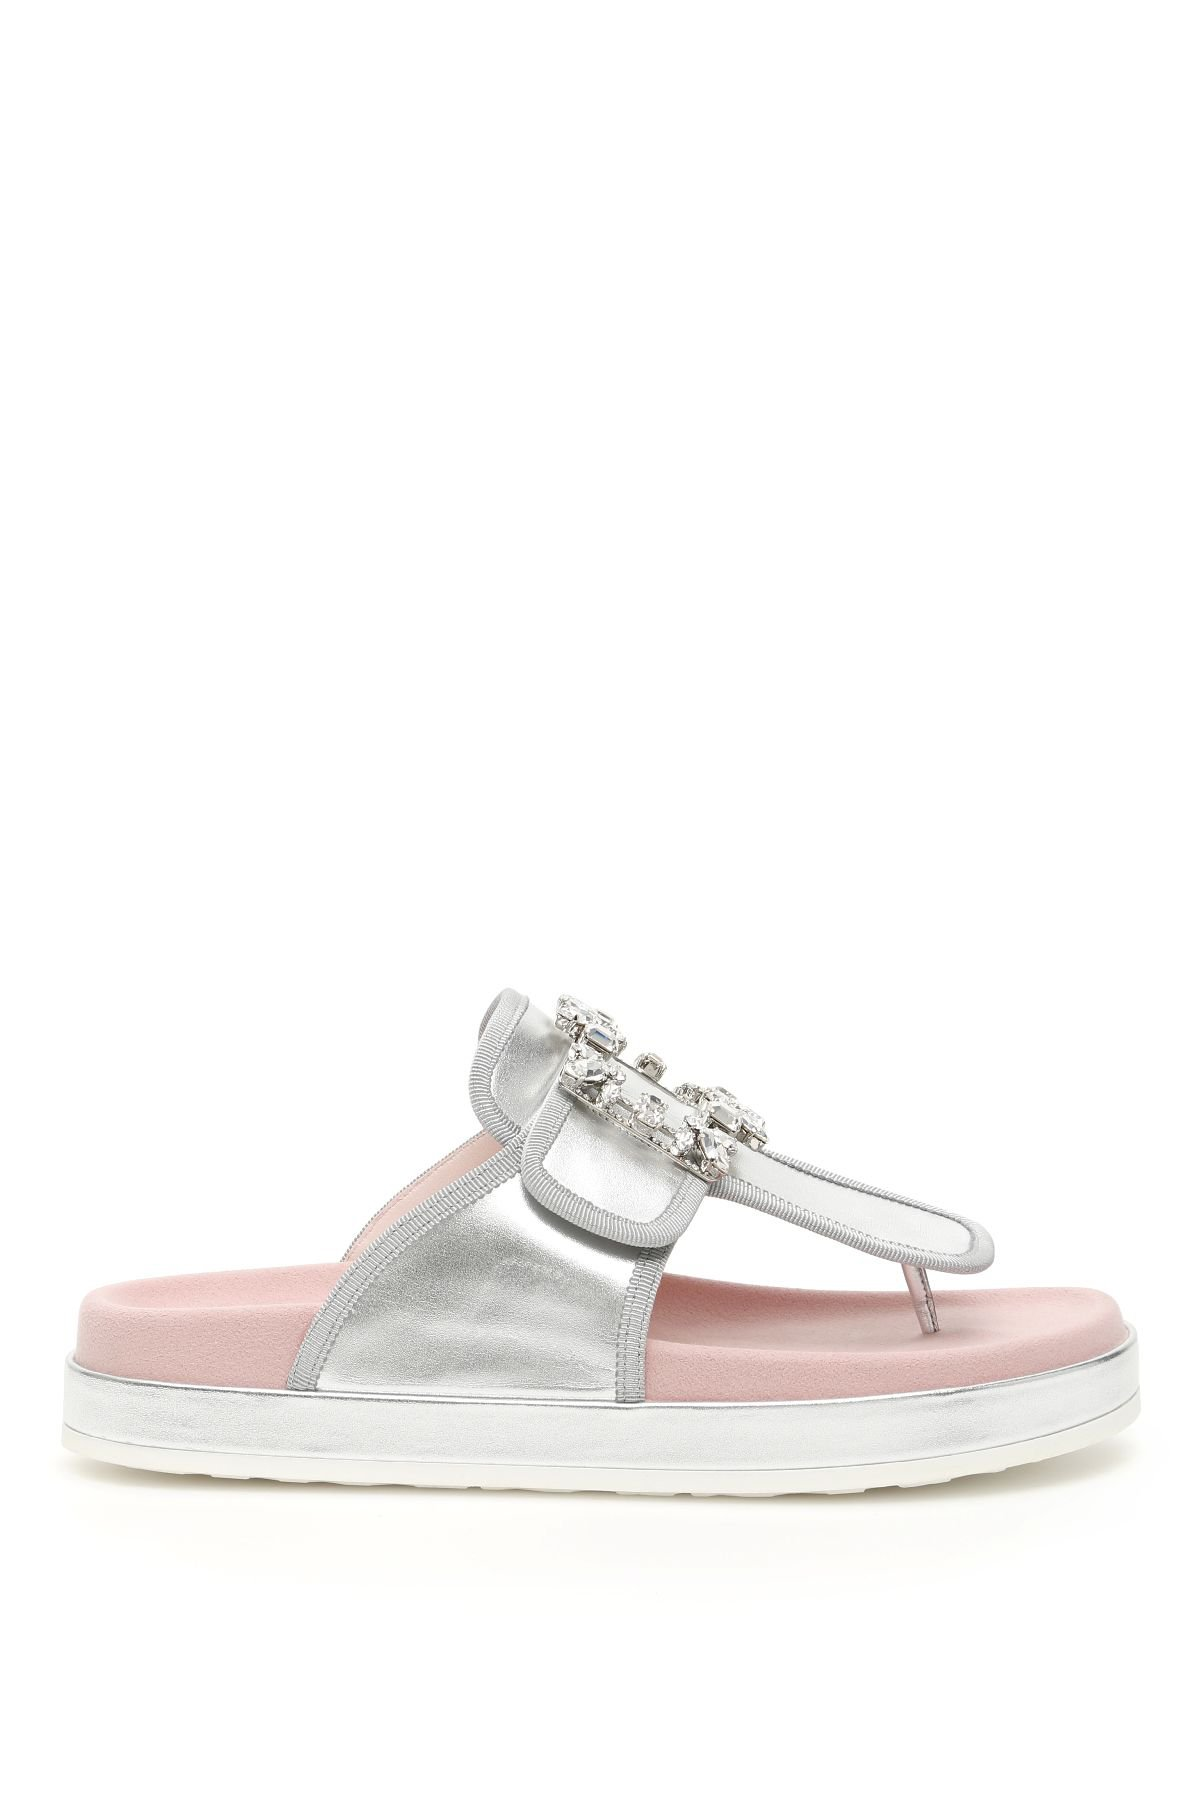 Roger Vivier Rv Broche Thong Sandals